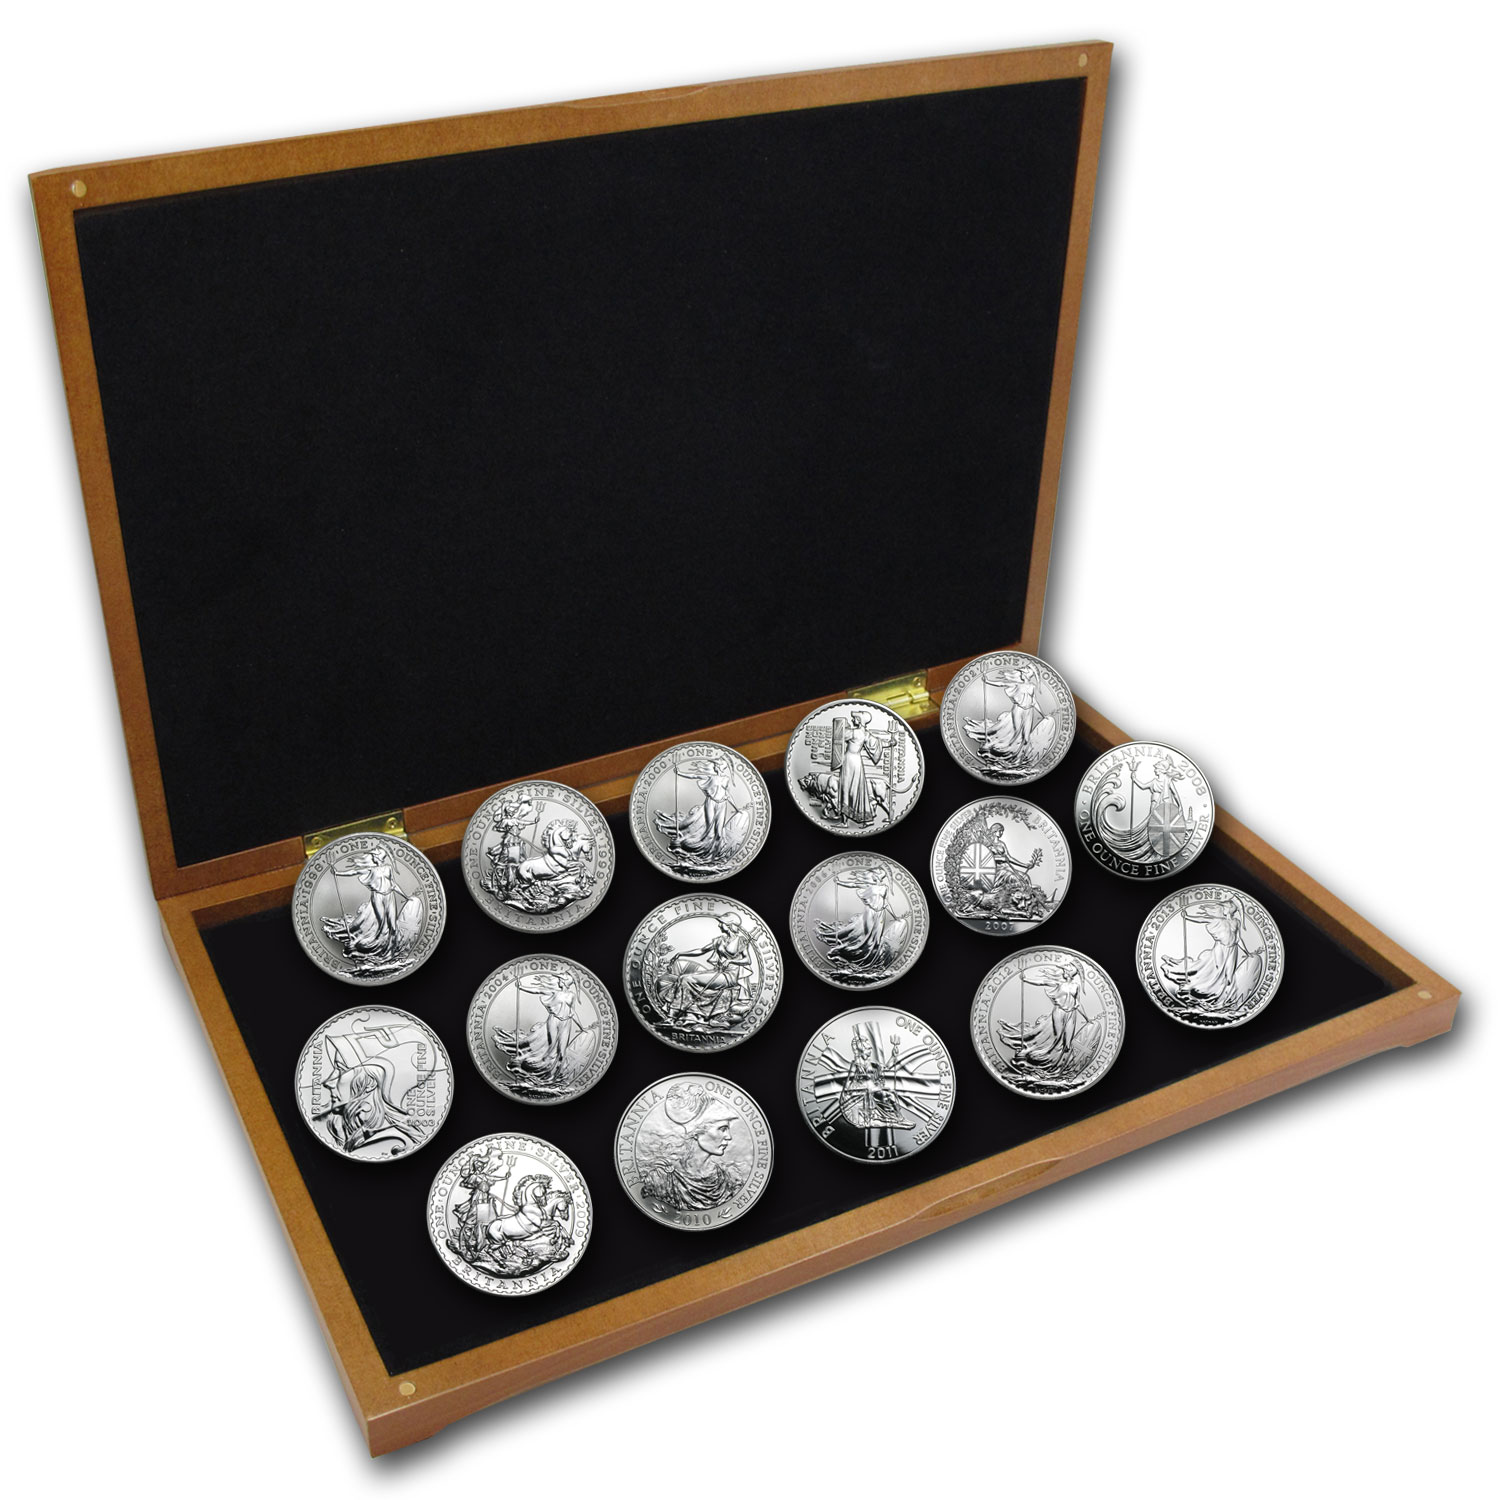 1998-2014 17-Coin Silver Britannia Set BU (Wood Presentation Box)